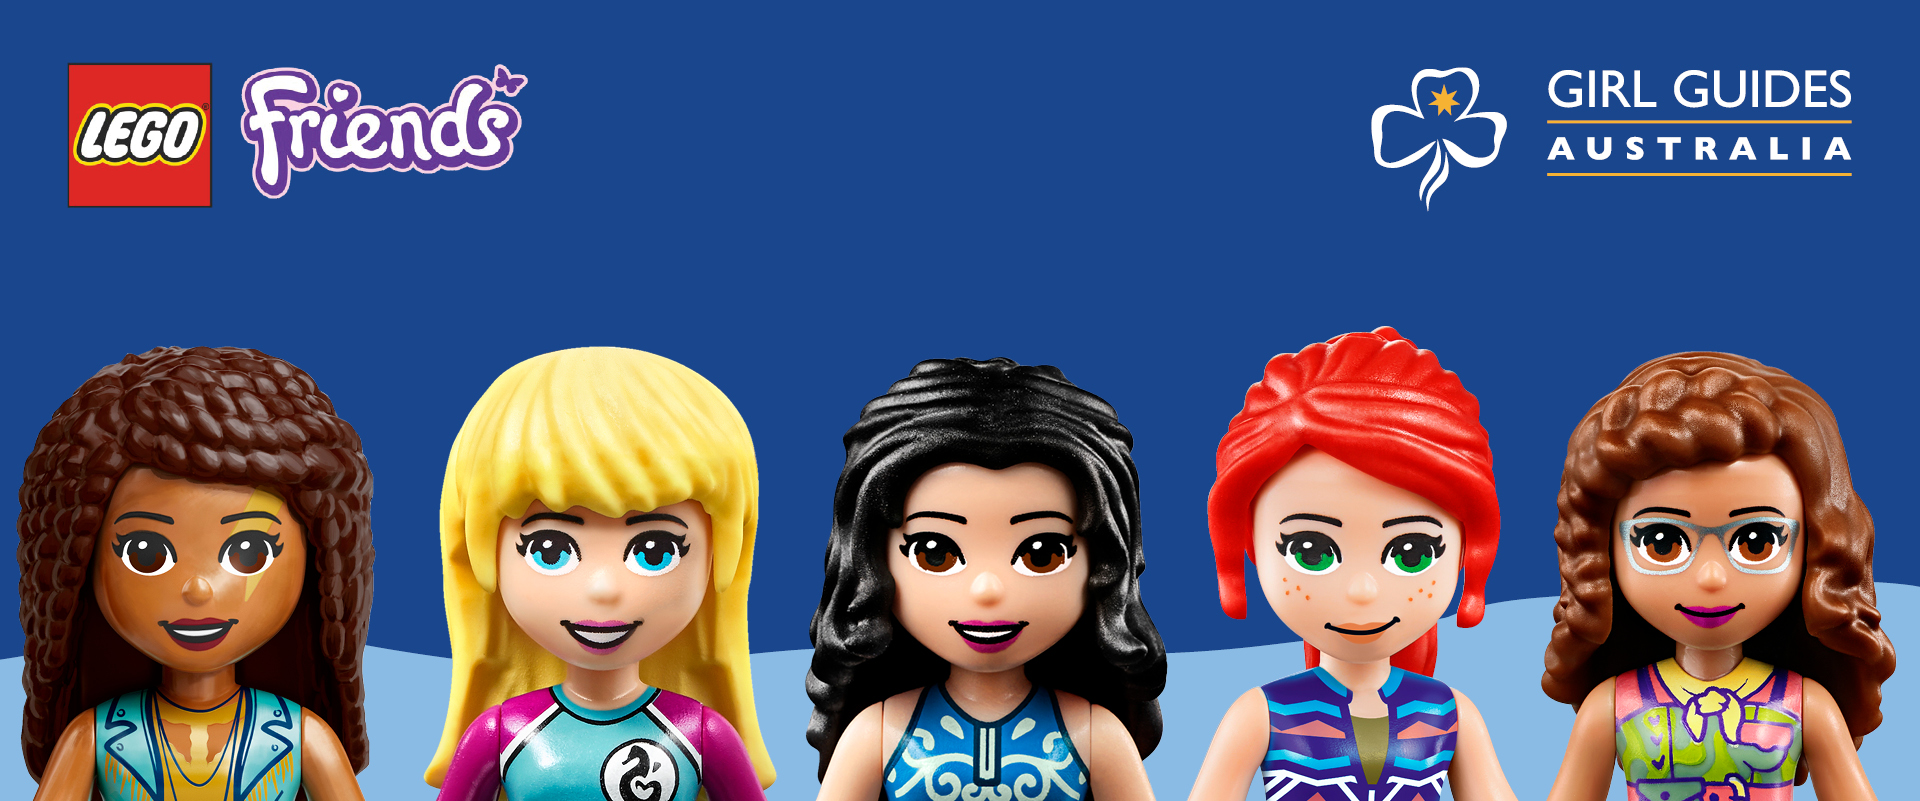 "Girl Guides Australia LEGO <sup class=""registered"">®</sup> Friendship Challenge"